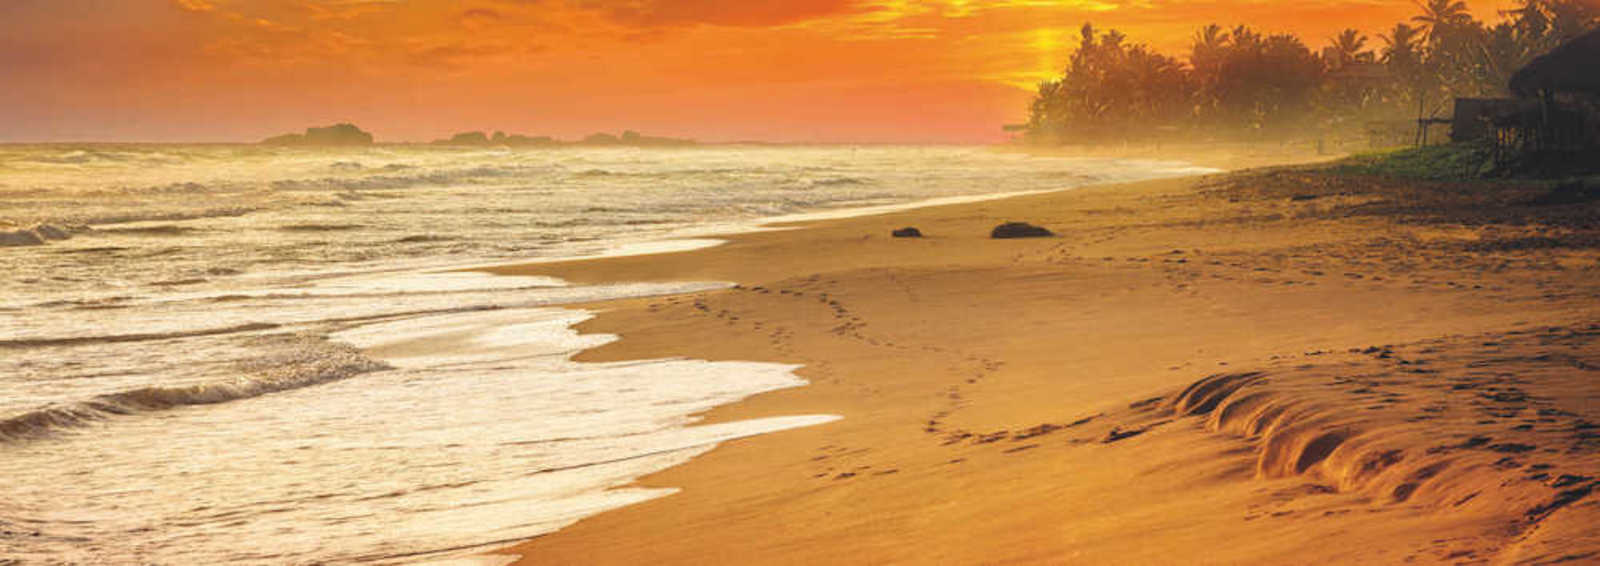 Sri Lanka's world-famous beaches